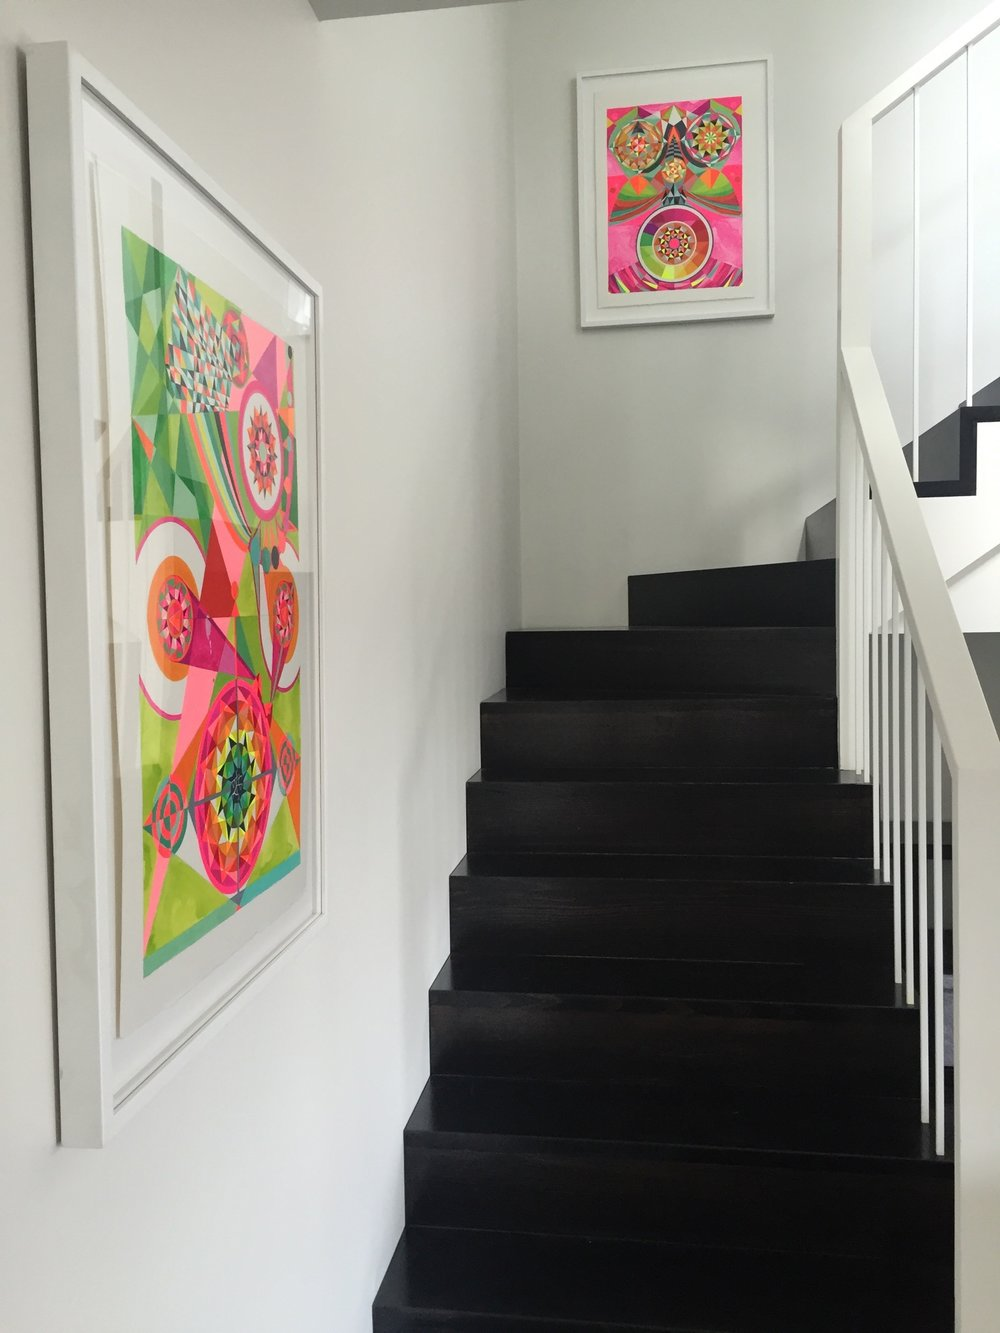 Amazing colourful framed artwork creates such a different with pops of colour!